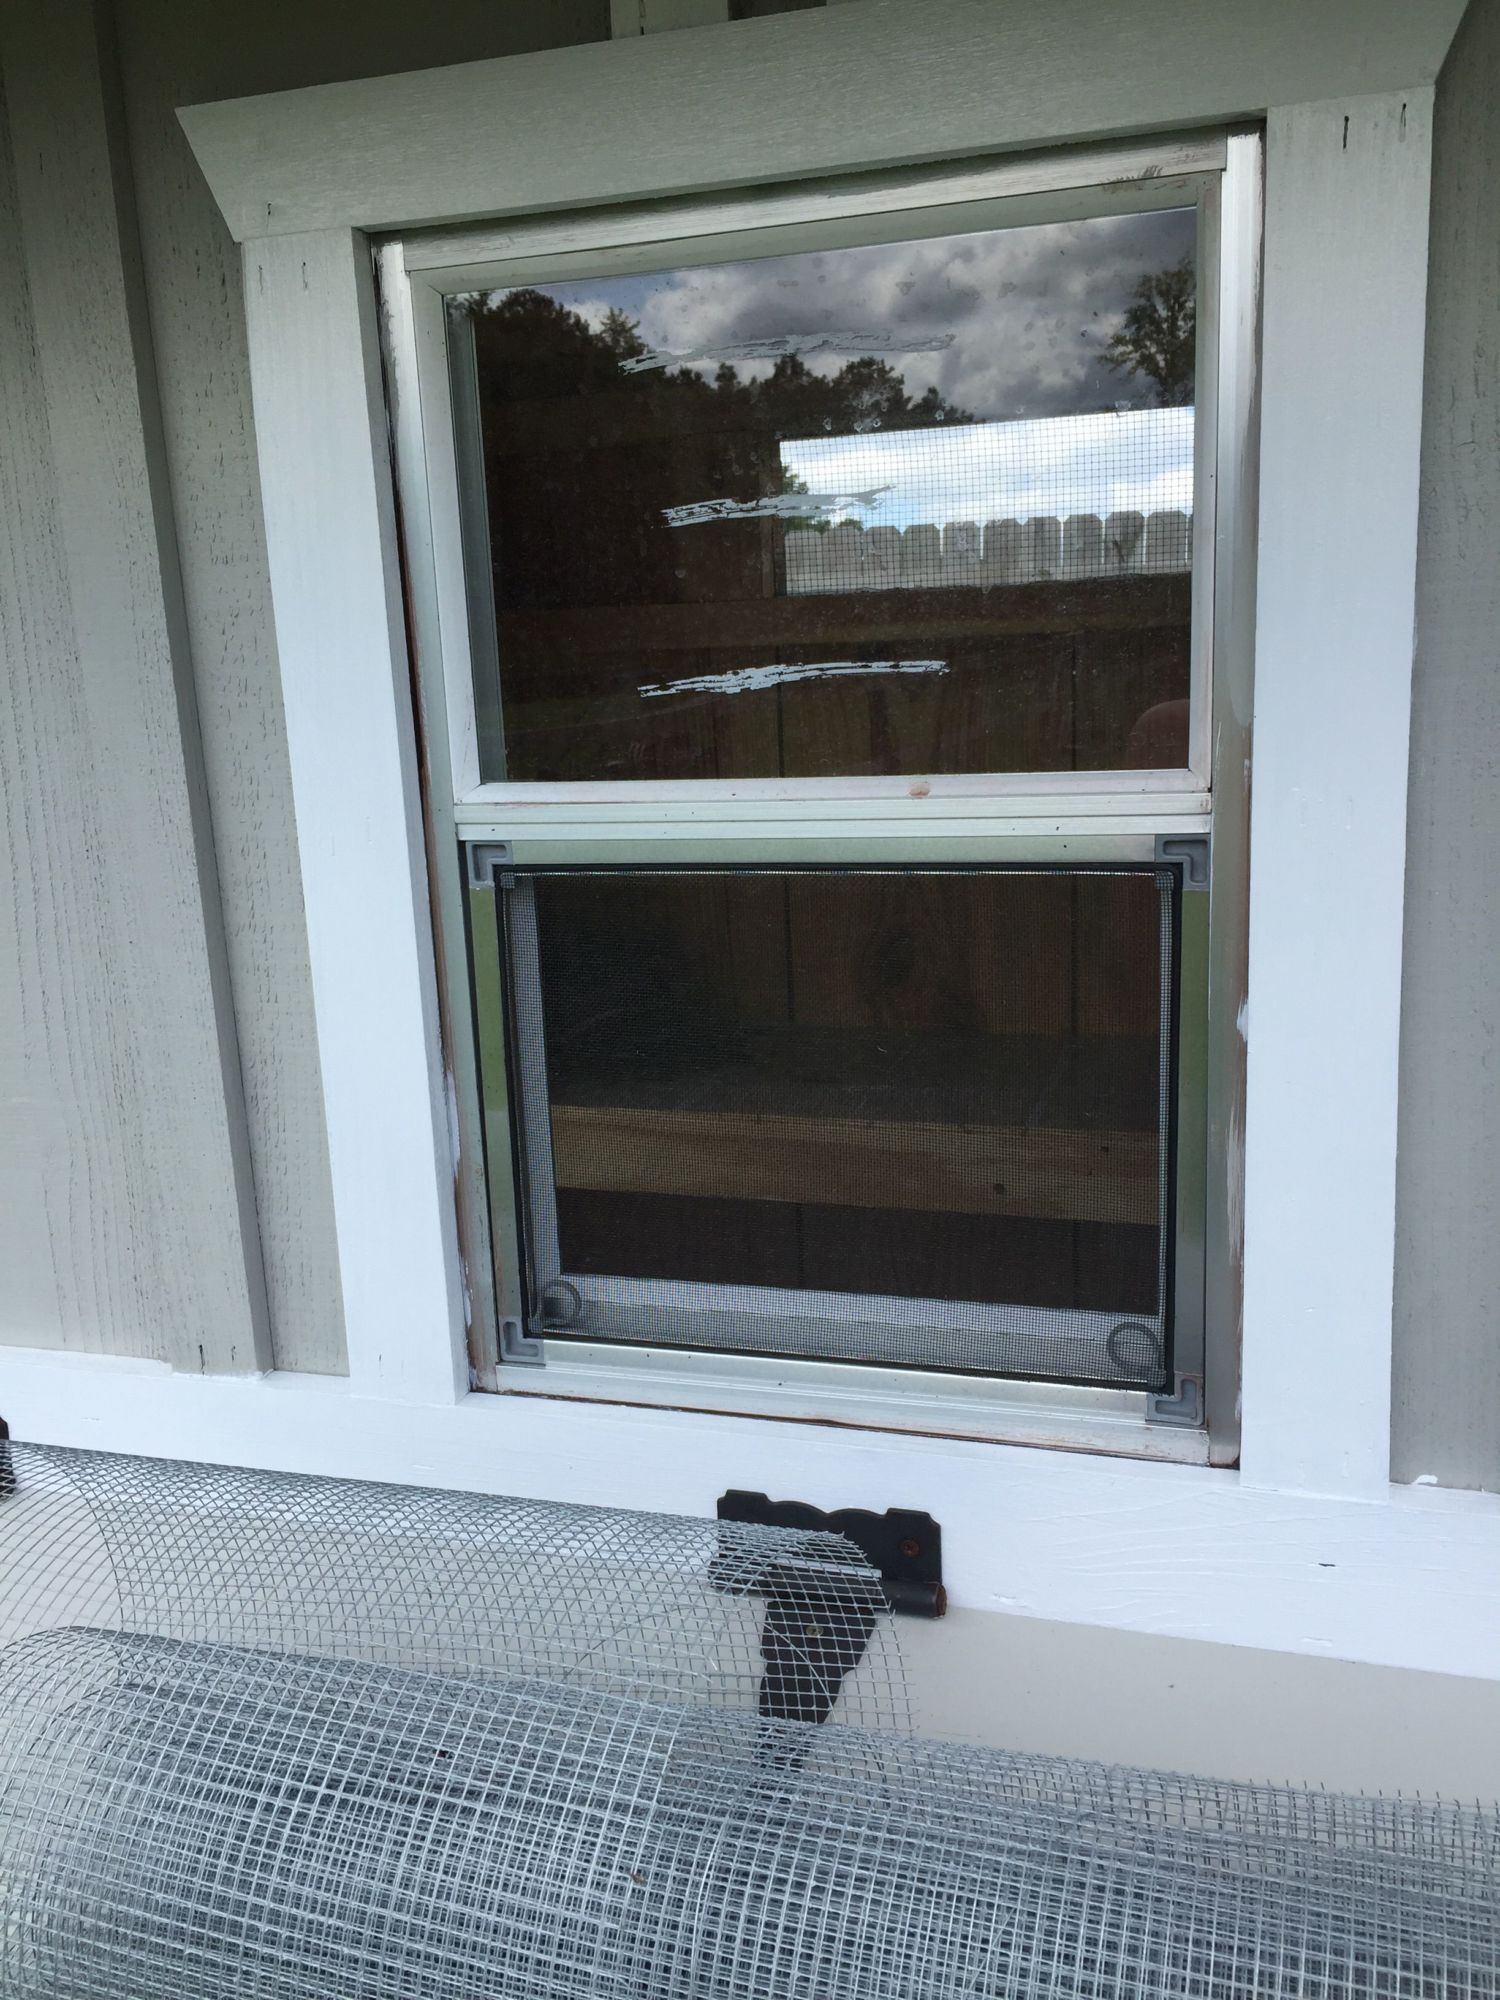 How would you hardware cloth this window?